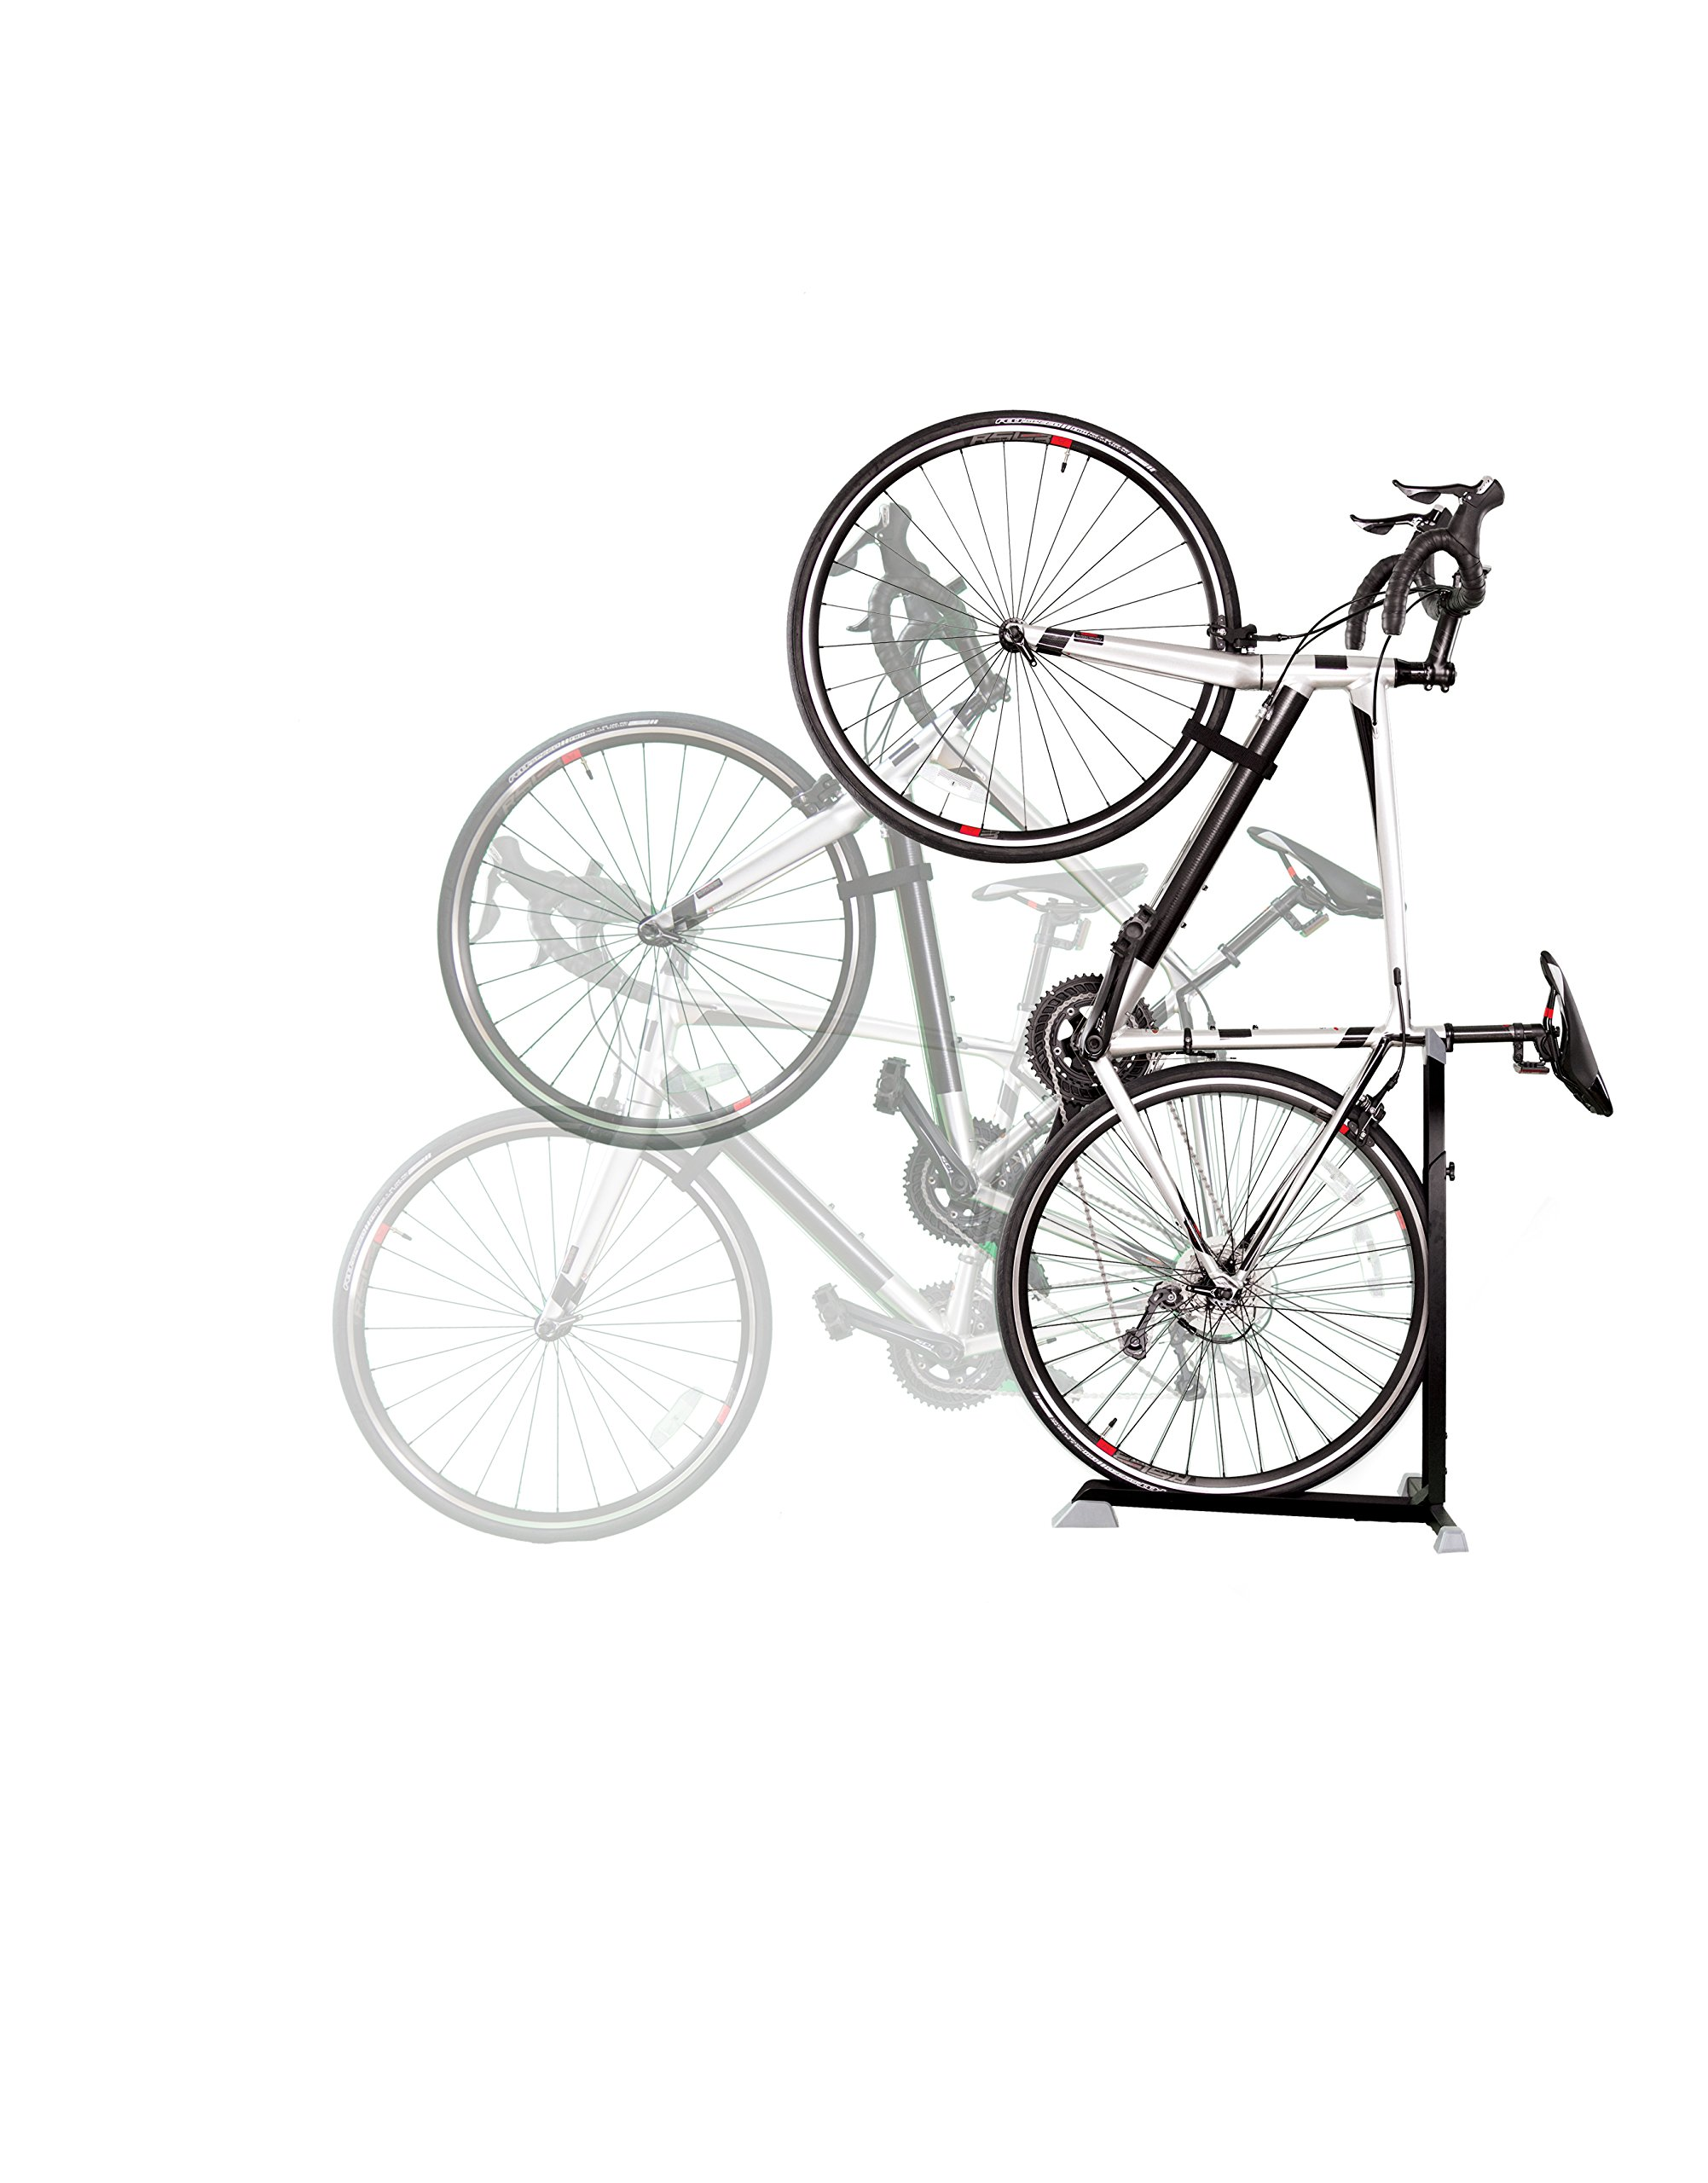 Bike Nook Bicycle Stand The Easy-to-Use Upright Design Lets You Store Your Bike Instantly in A Space-Saving Handstand Position, Freeing Floor Space in Your Living Room, Bedroom or Garage!